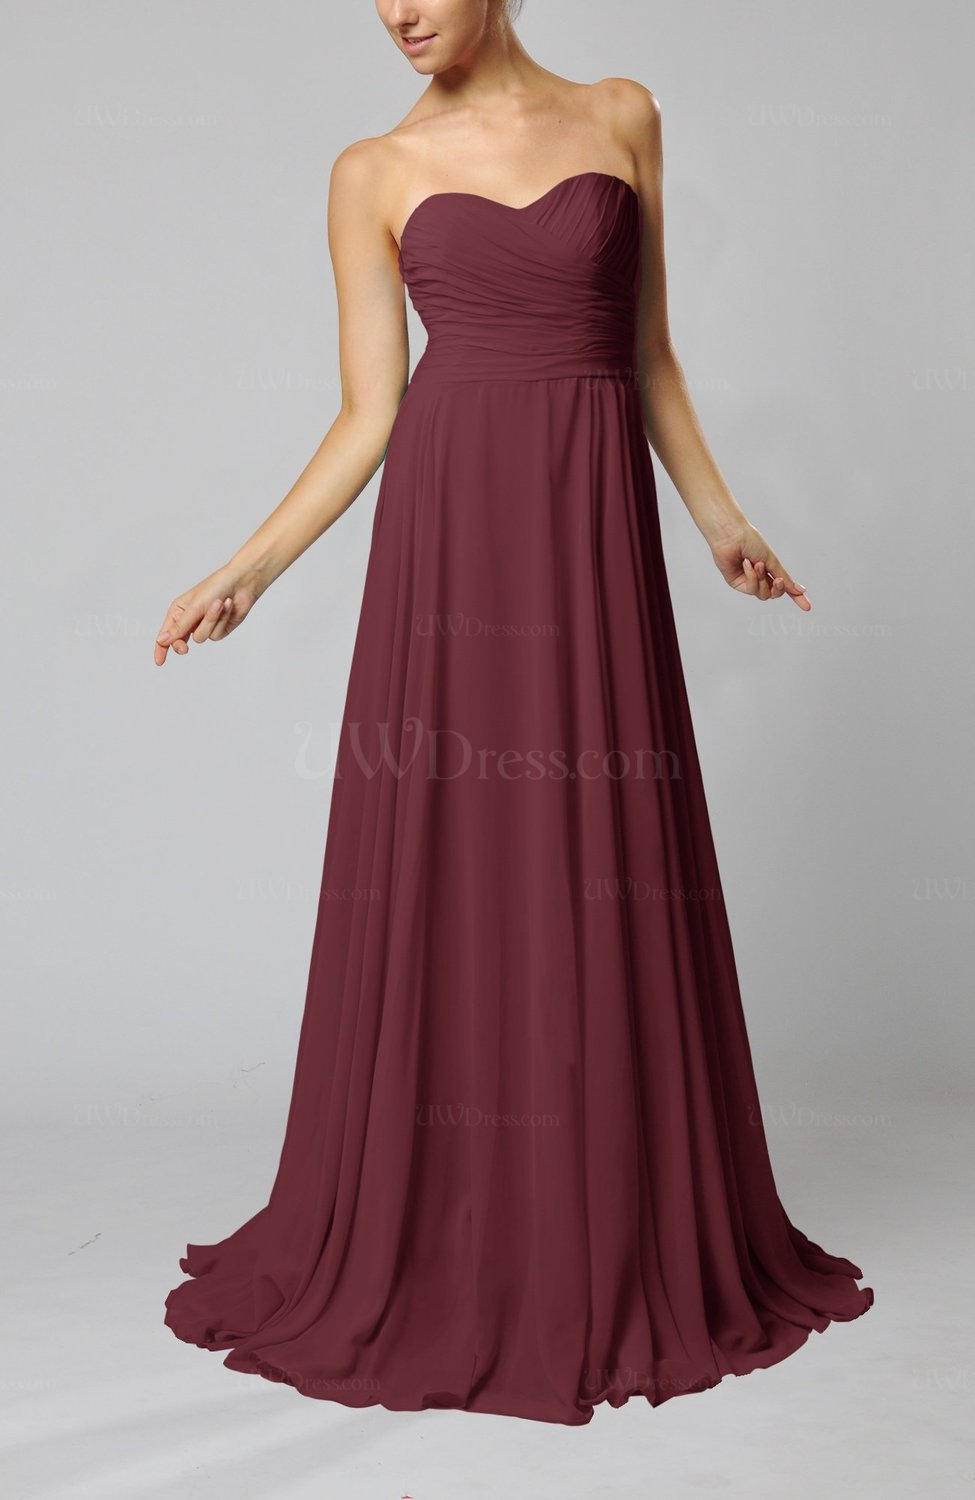 8dc1491312e Burgundy Simple Sheath Sweetheart Zip up Sweep Train Ruching Wedding Guest  Dresses (Style D95824)